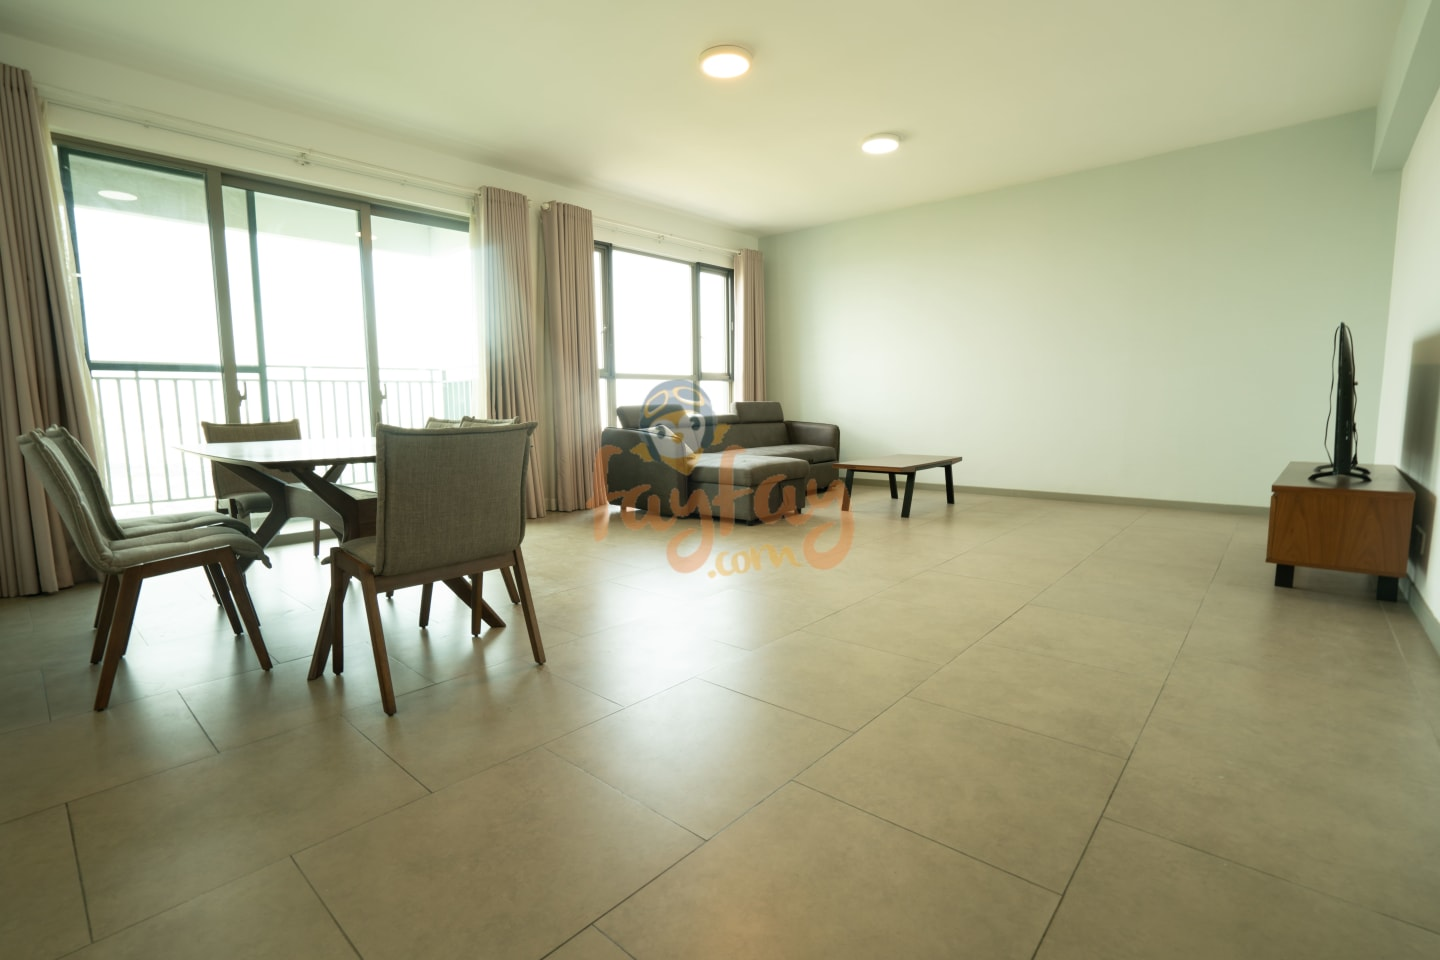 [RENT] RiVIERA POINT DISTRICT 07 - FULLY FURNISHED 3 BR UNIT - HIGH FLOOR - banner